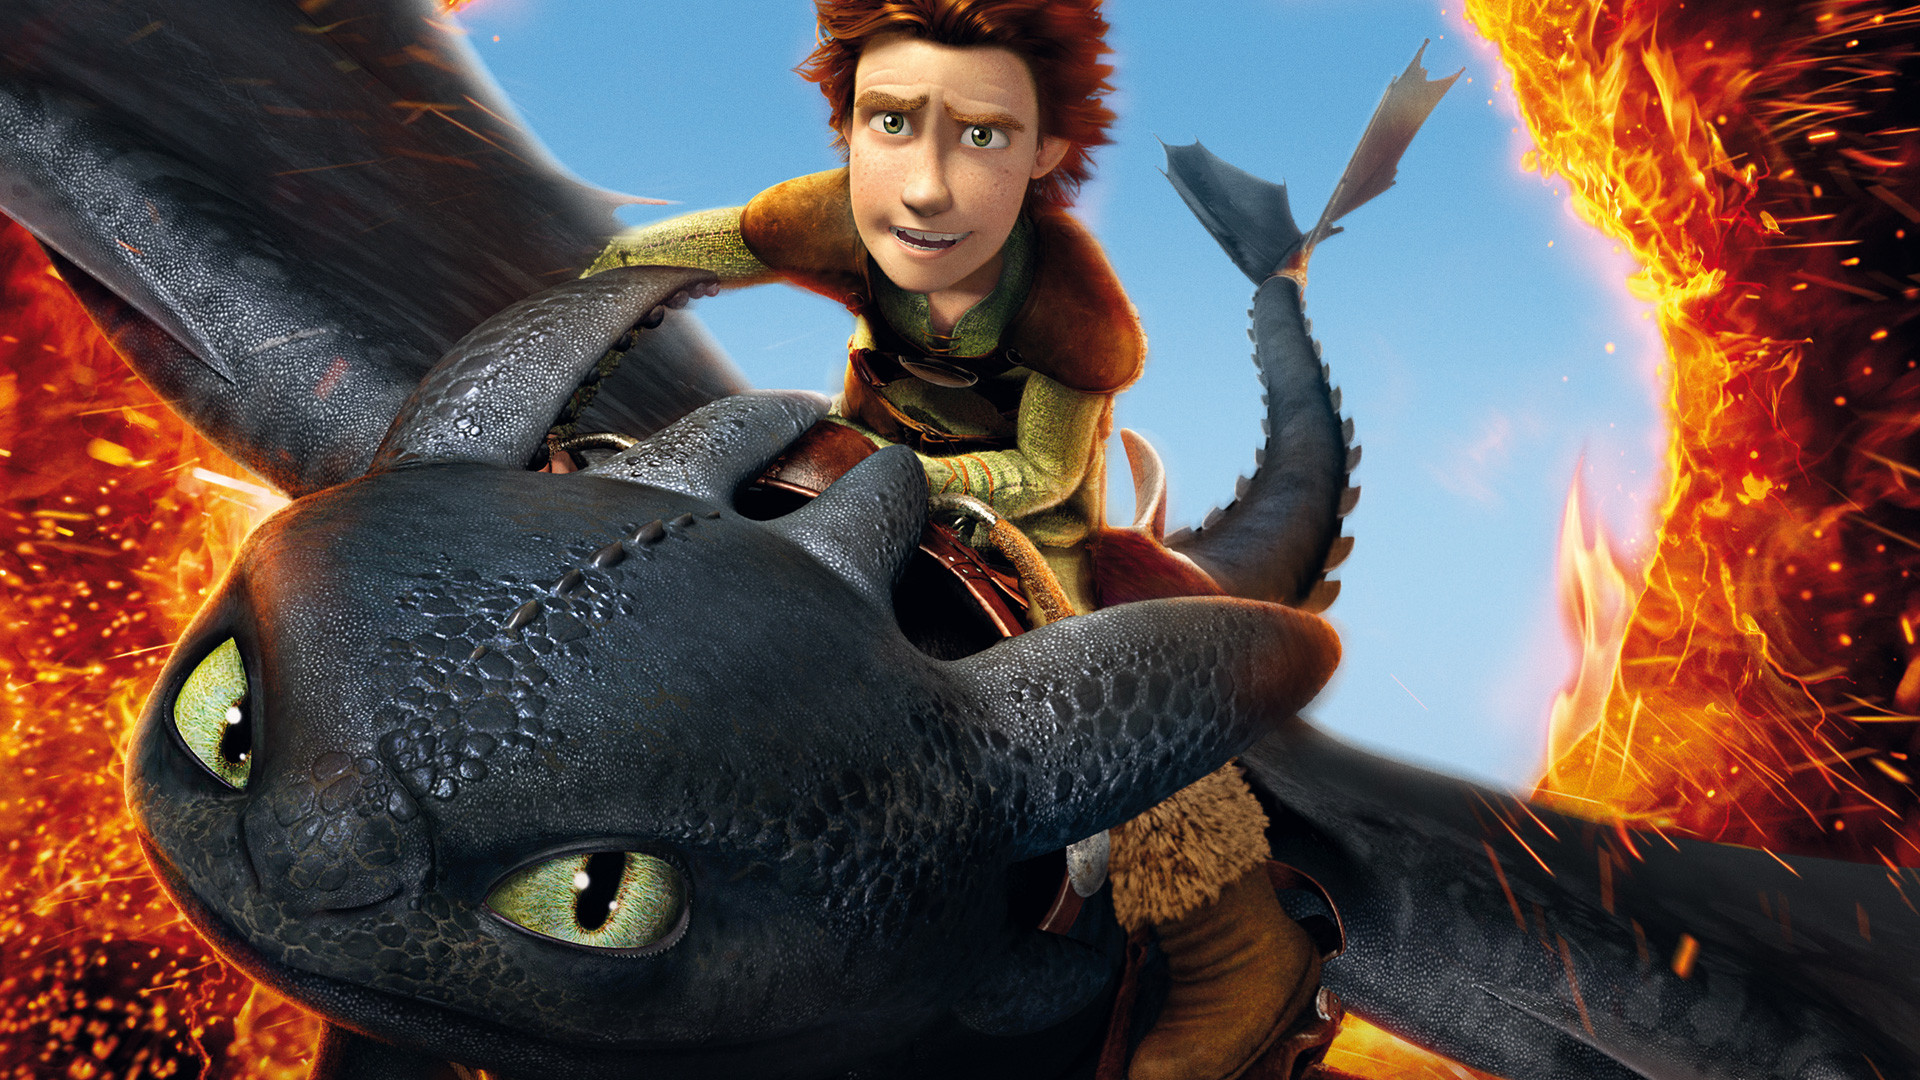 How To Train Your Dragon 1 Hd Movies 4k Wallpapers Images Backgrounds Photos And Pictures